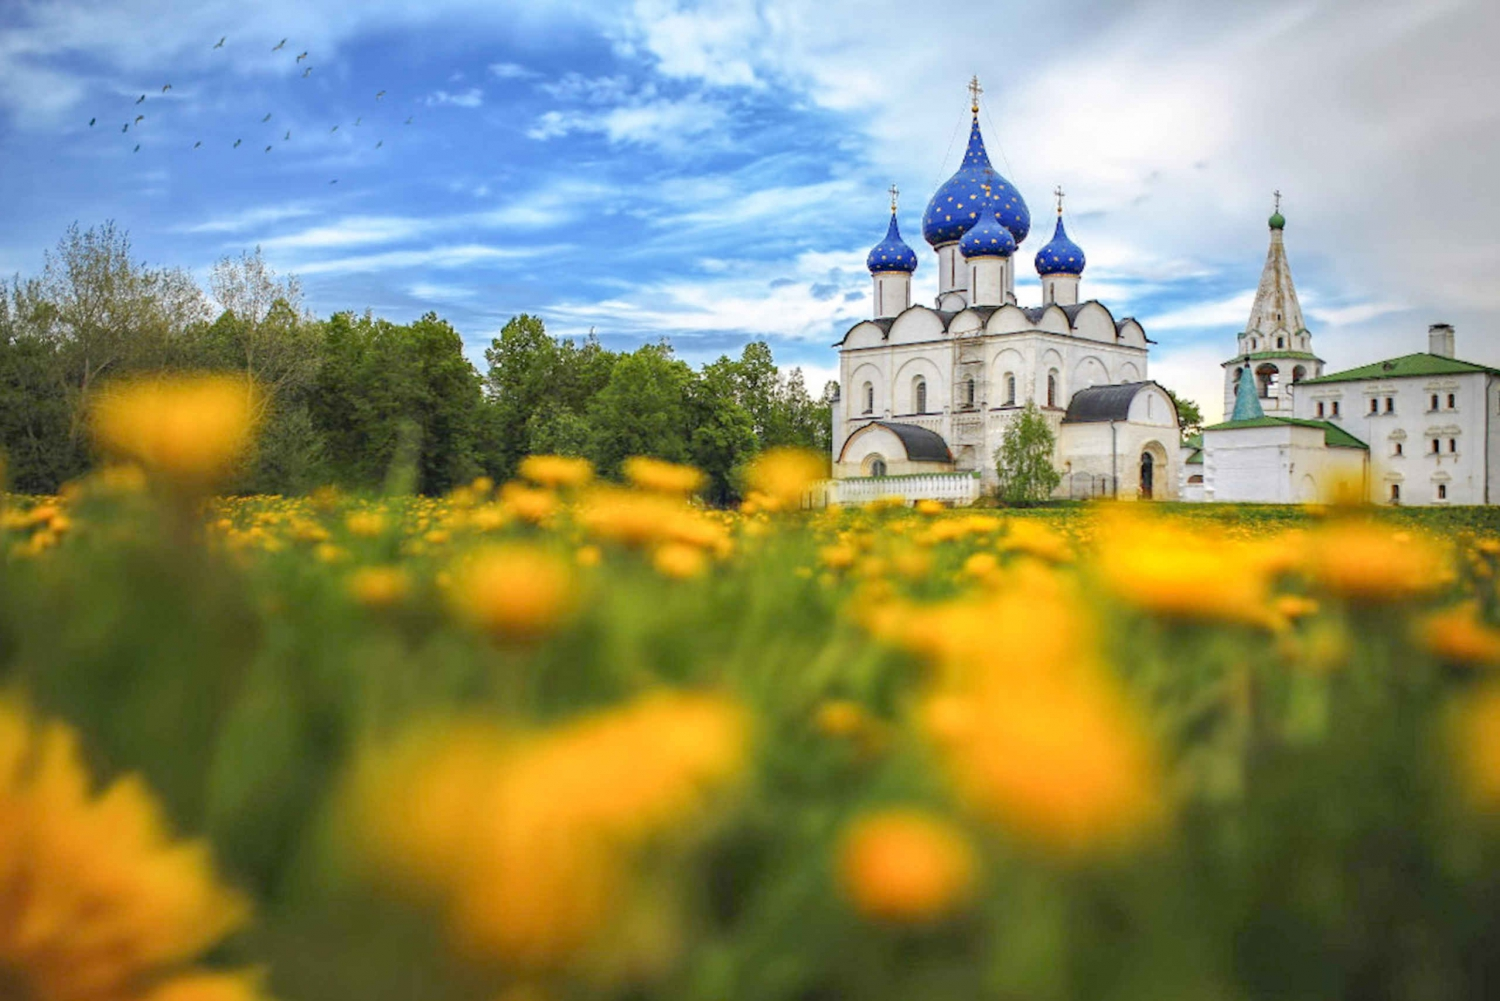 Suzdal & Vladimir Golden Ring of Russia Private 1-Day Tour